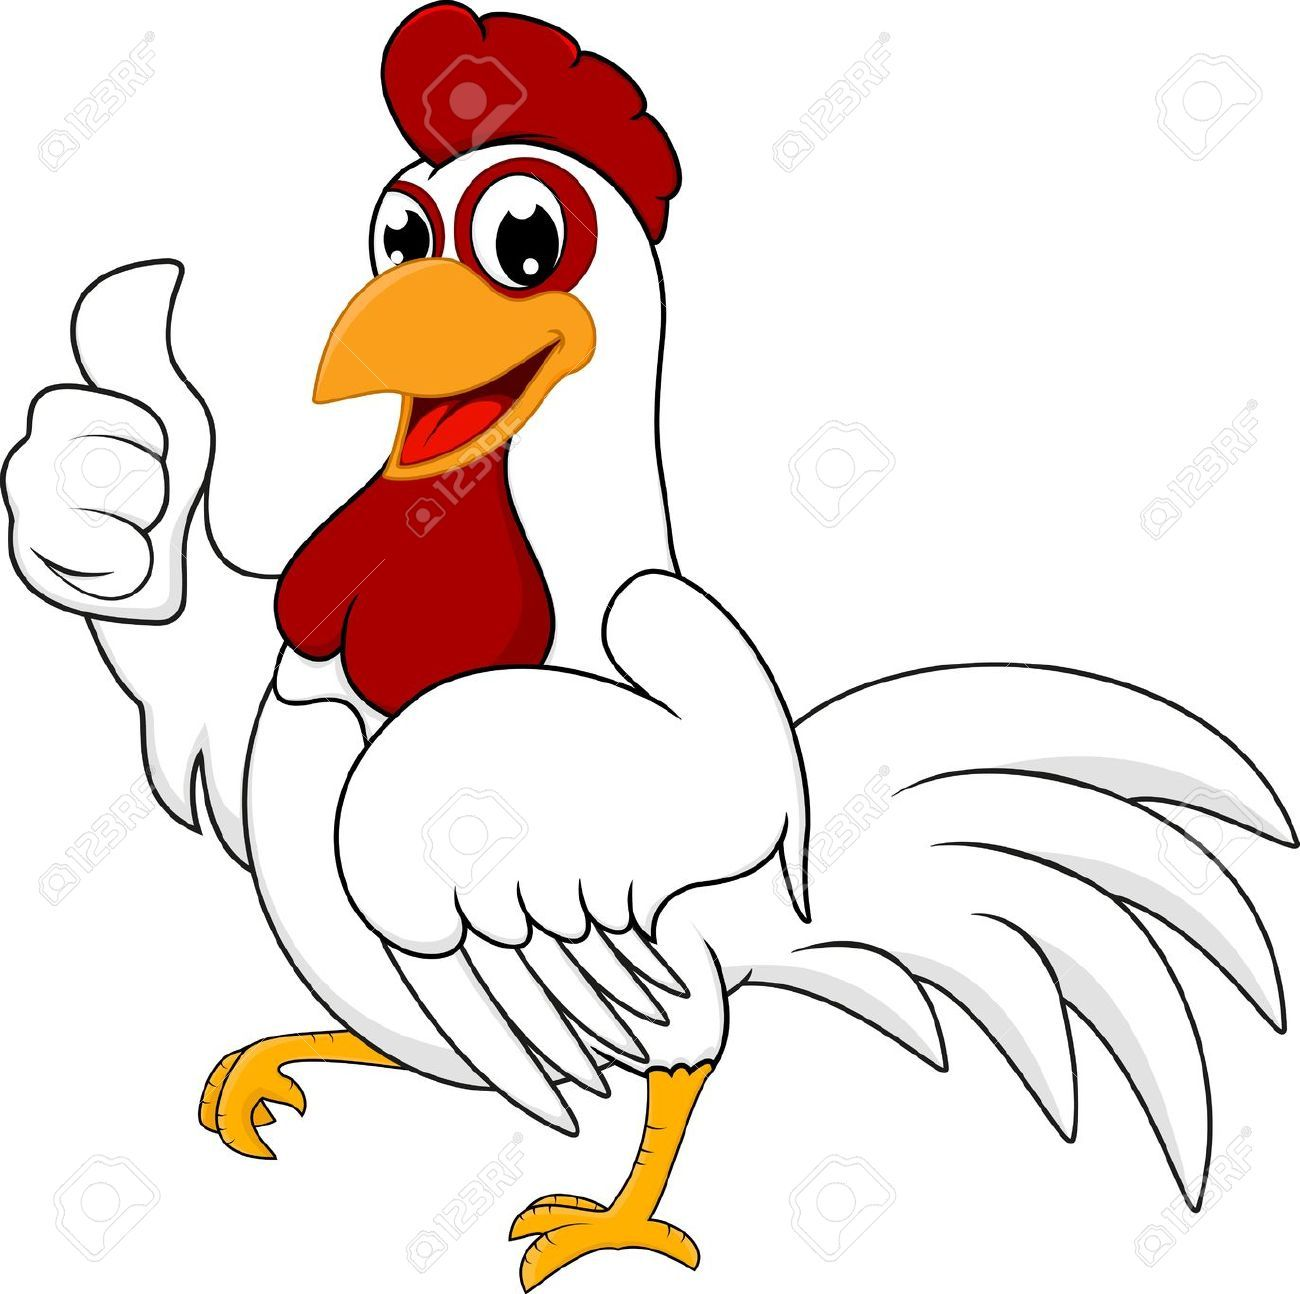 Pin by phyl on chickens cartoon chicken cartoon images cartoon - Poulet dessin ...